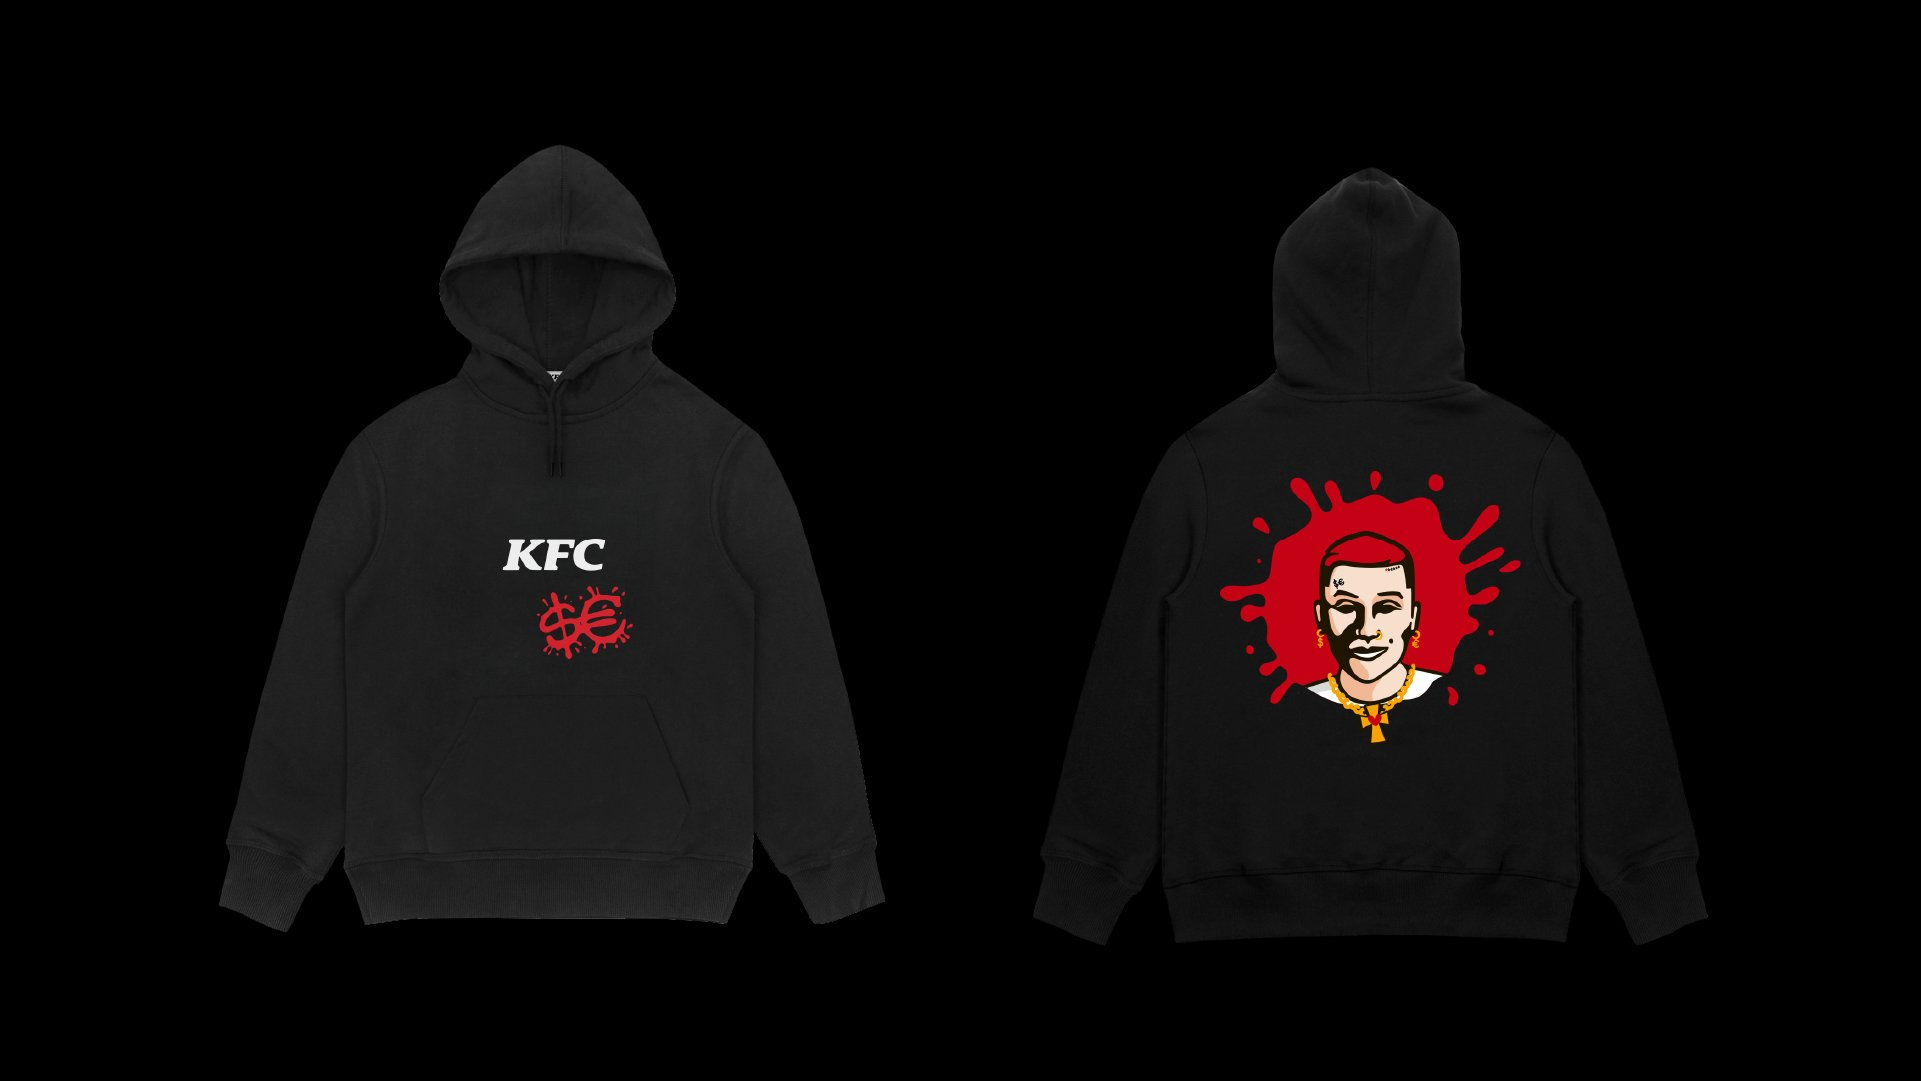 SFERA KFC MERCH 2020 hoodies 01